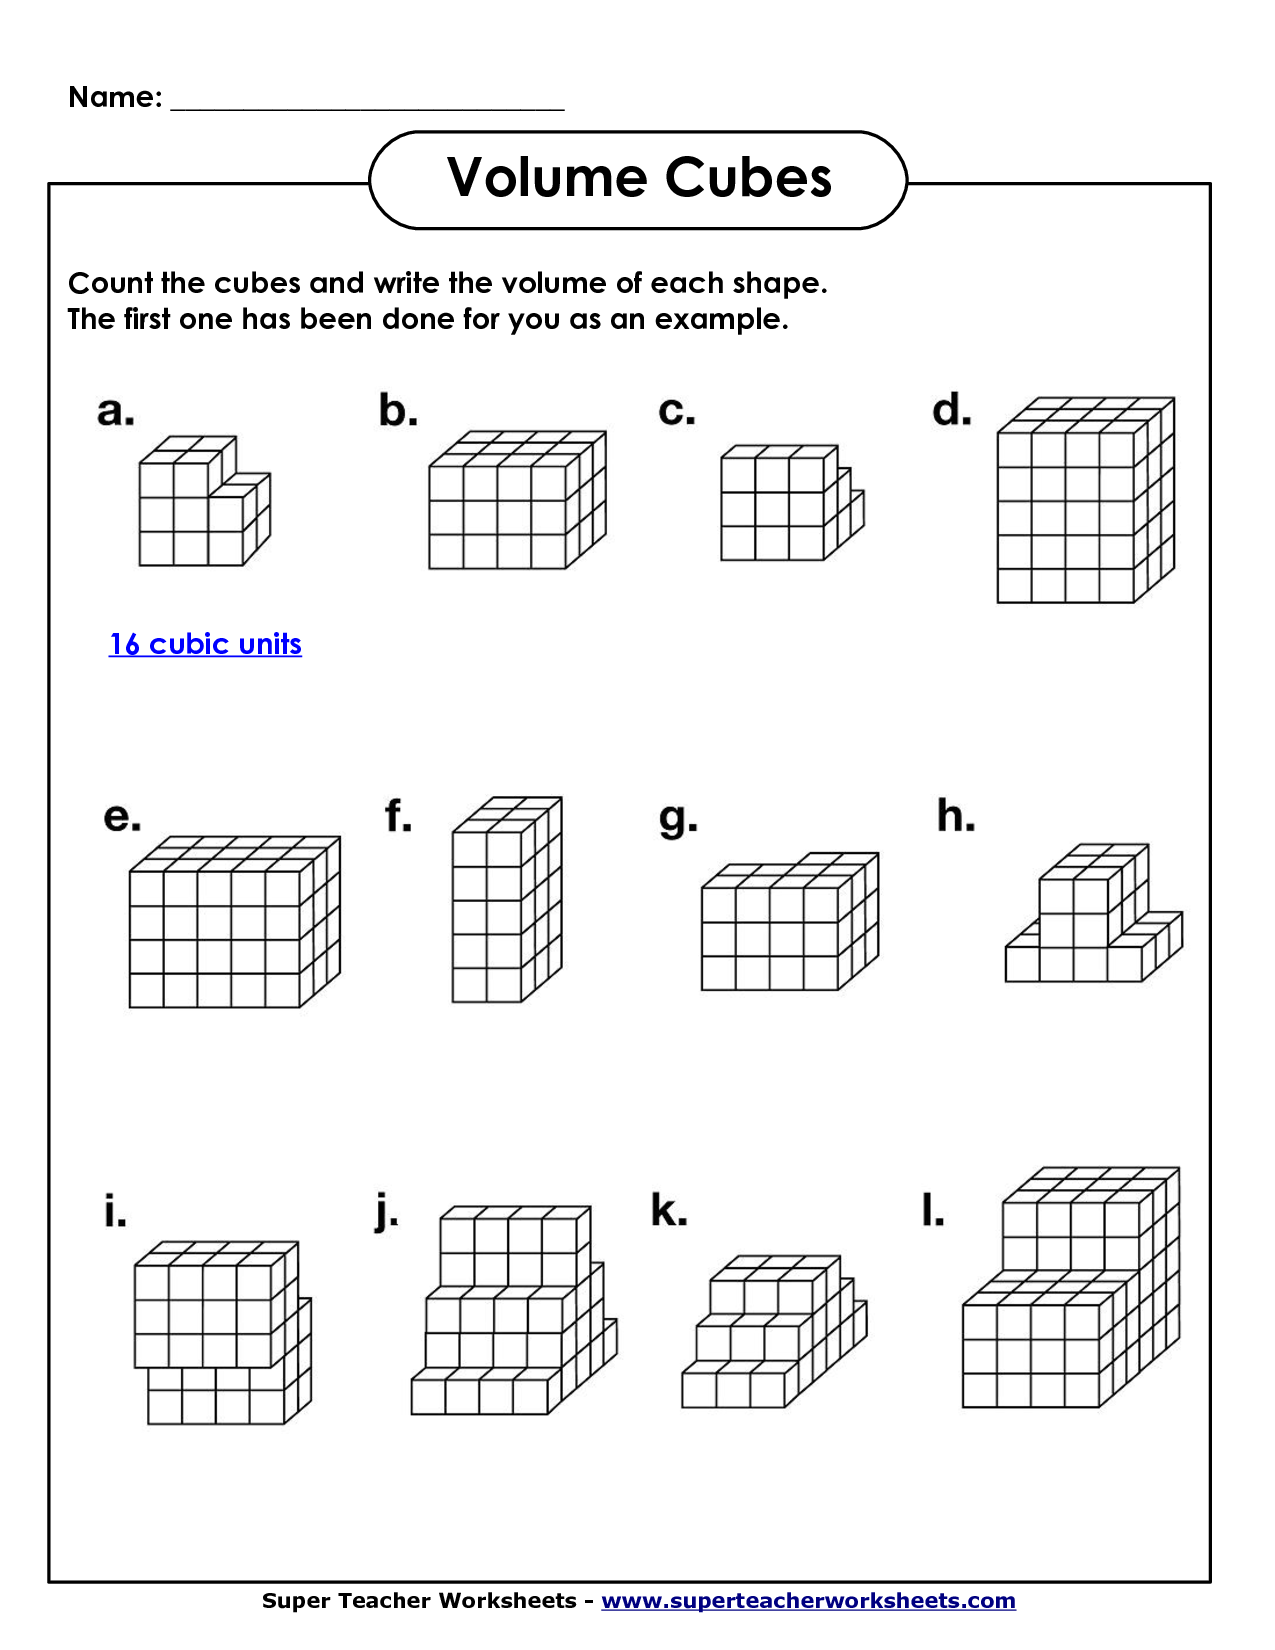 Worksheets Geometry Worksheets Pdf volume geometry with cubic units pdf math worksheets pdf